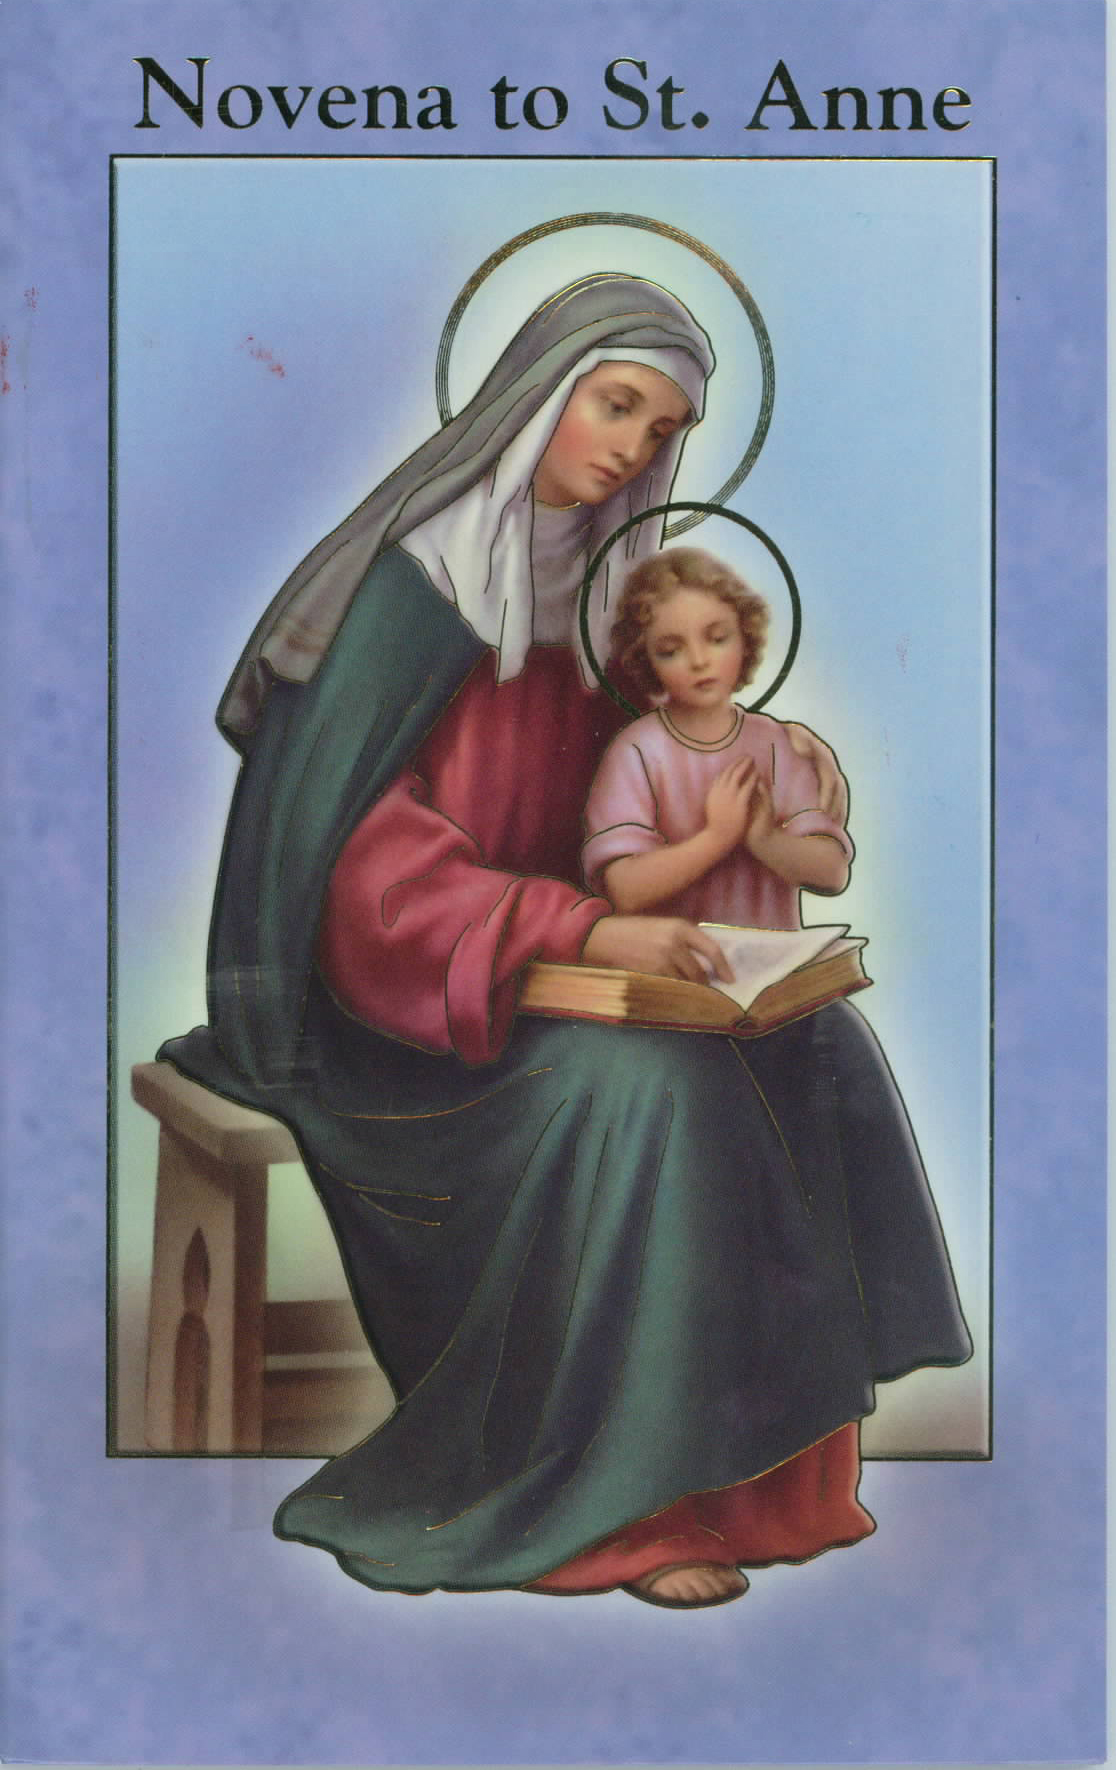 "Novena to St. Anne  & Prayers Book 12-2432-610 is 3.75"" x 5-7/8"" and 24 pages beautifully illustrated with Italian Fratelli-Bonella Artwork and original text by Daniel A. Lord, S.J."